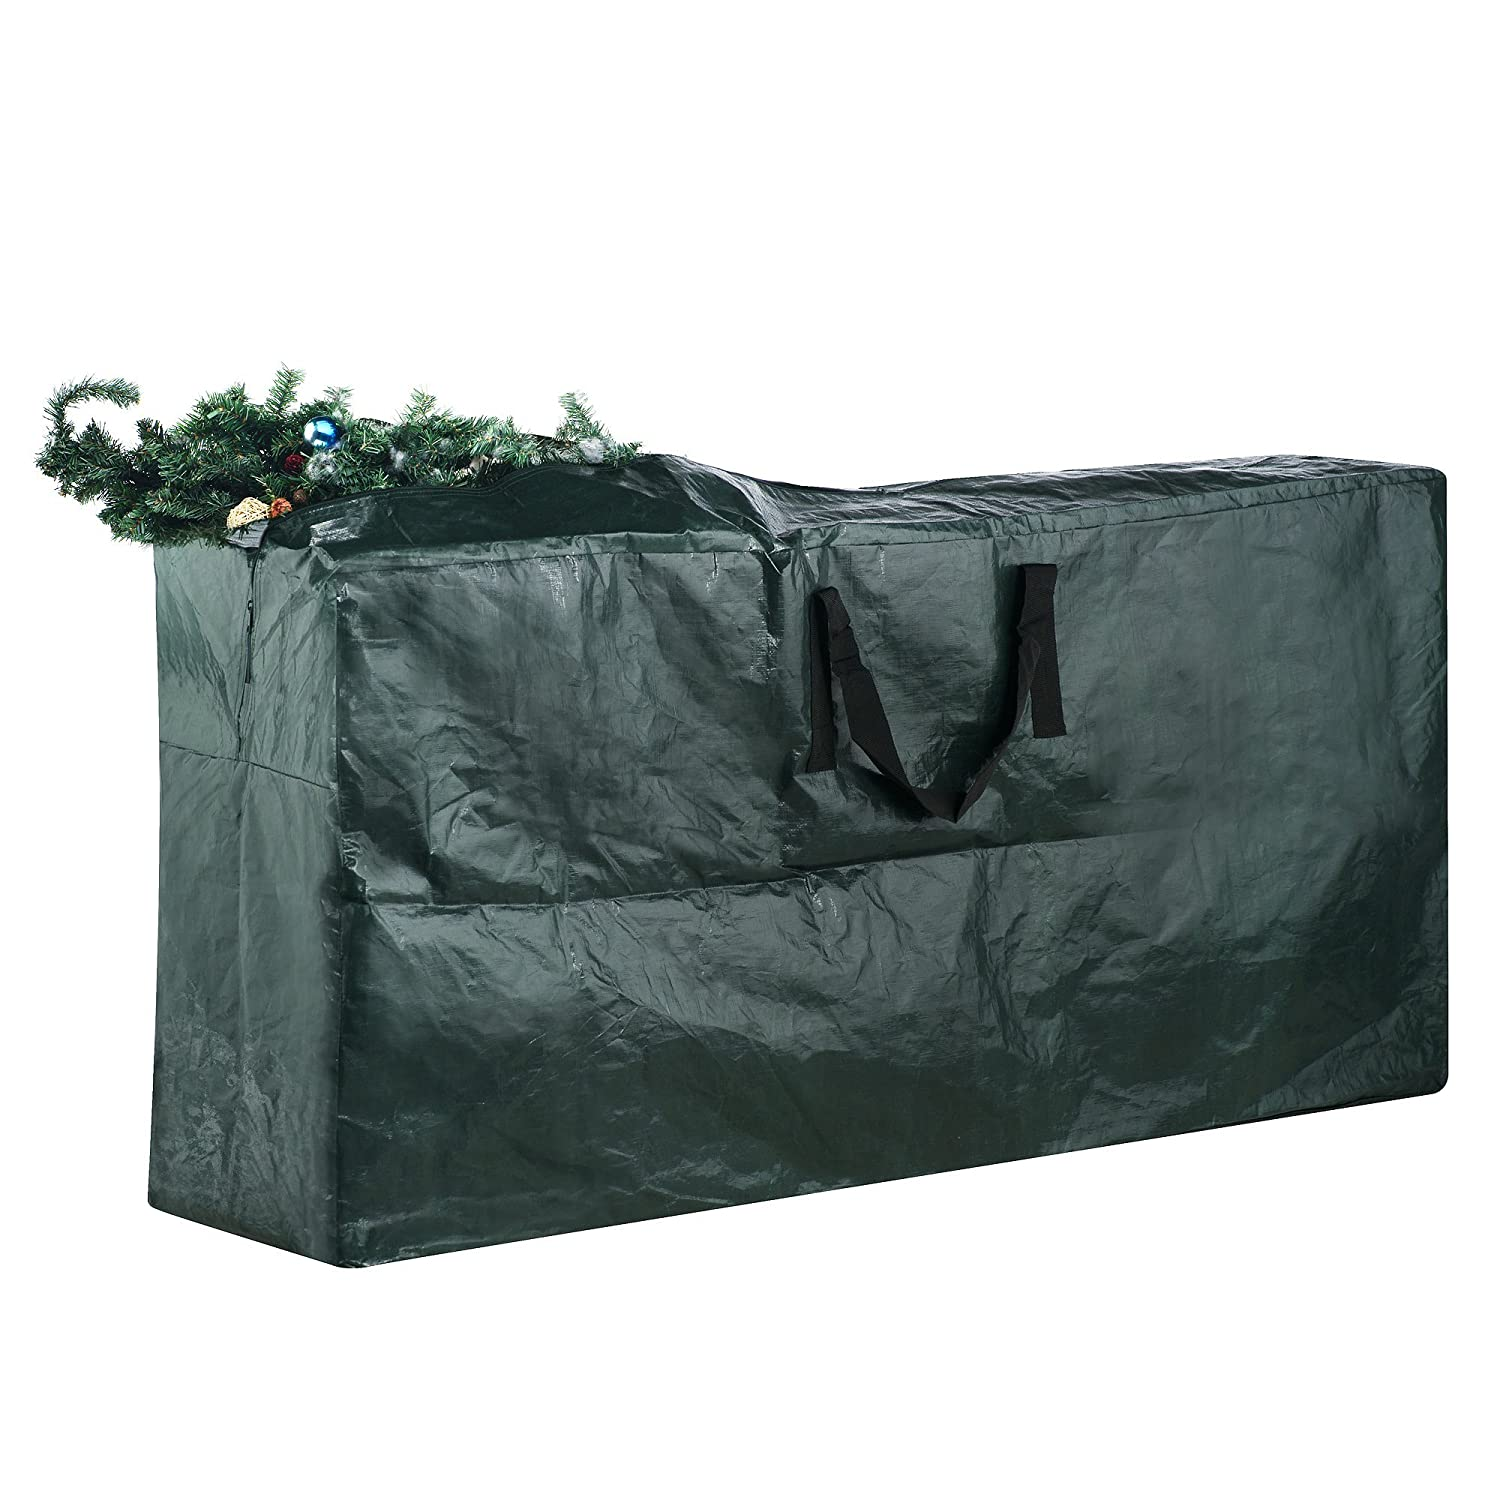 Elf Stor Premium Green Christmas Tree Bag Holiday Extra Large for up to 9' Tree Storage 5065 XMAS Bag